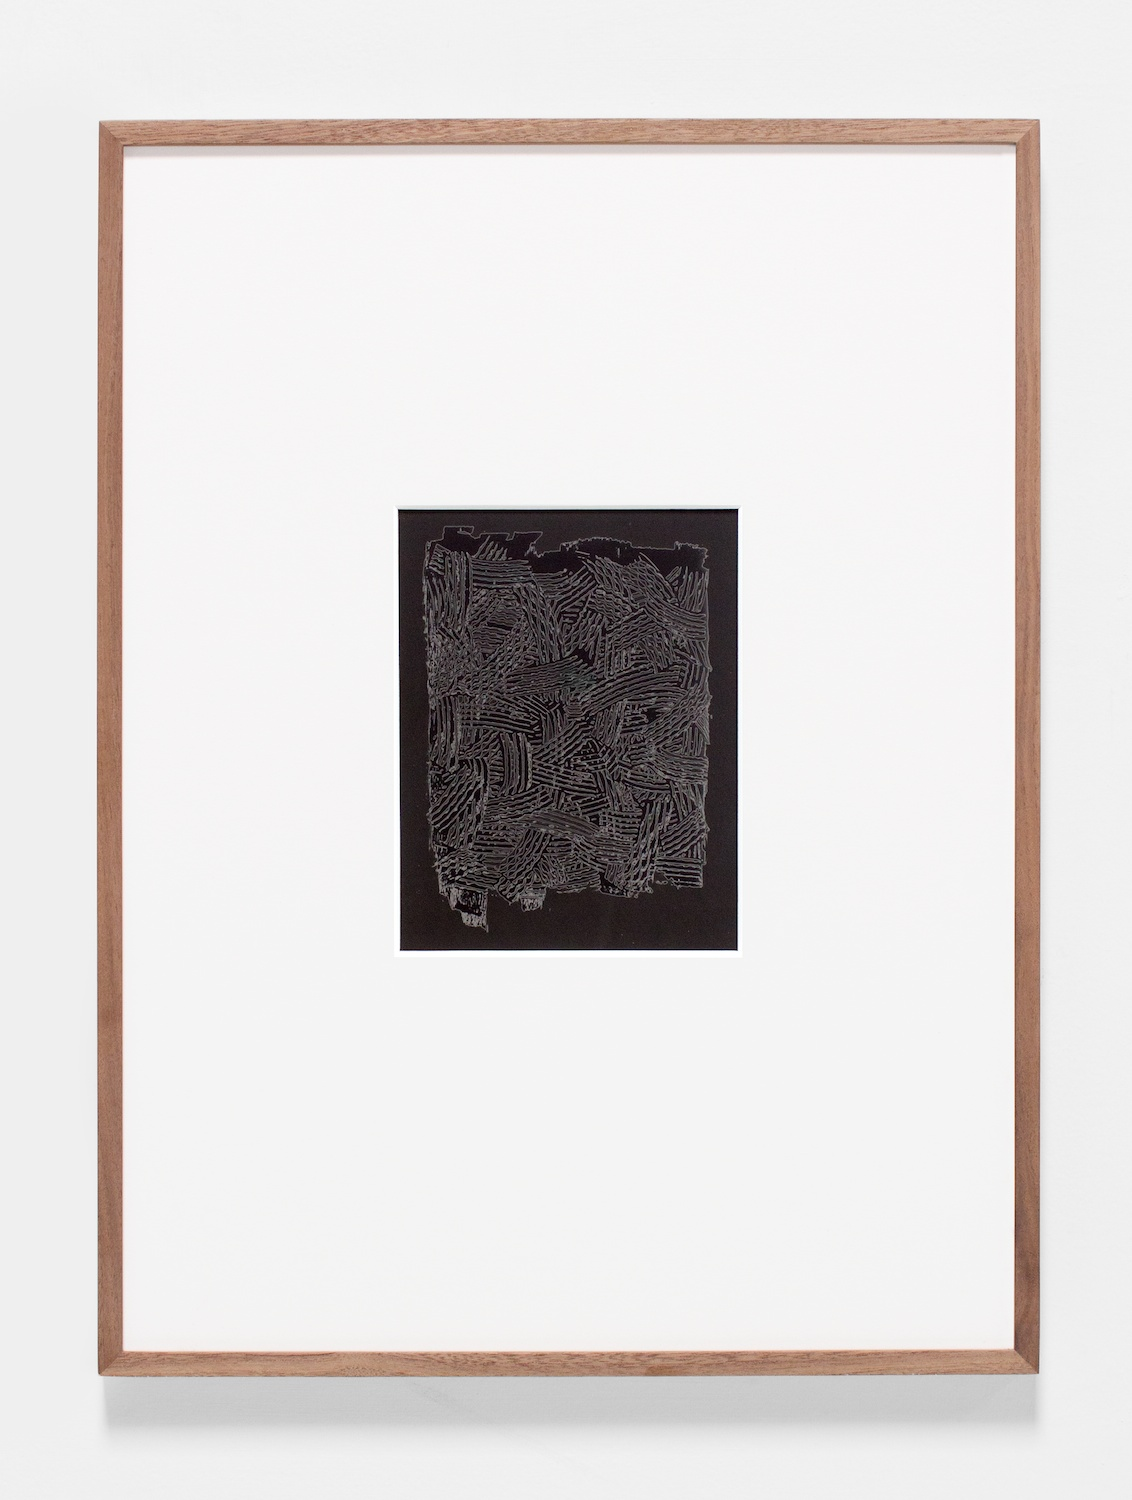 Anthony Pearson  Untitled (Solarization)  2011 Solarized silver gelatin photograph in artist frame 17 ¼h x 14 ½w x ¾d in AP278